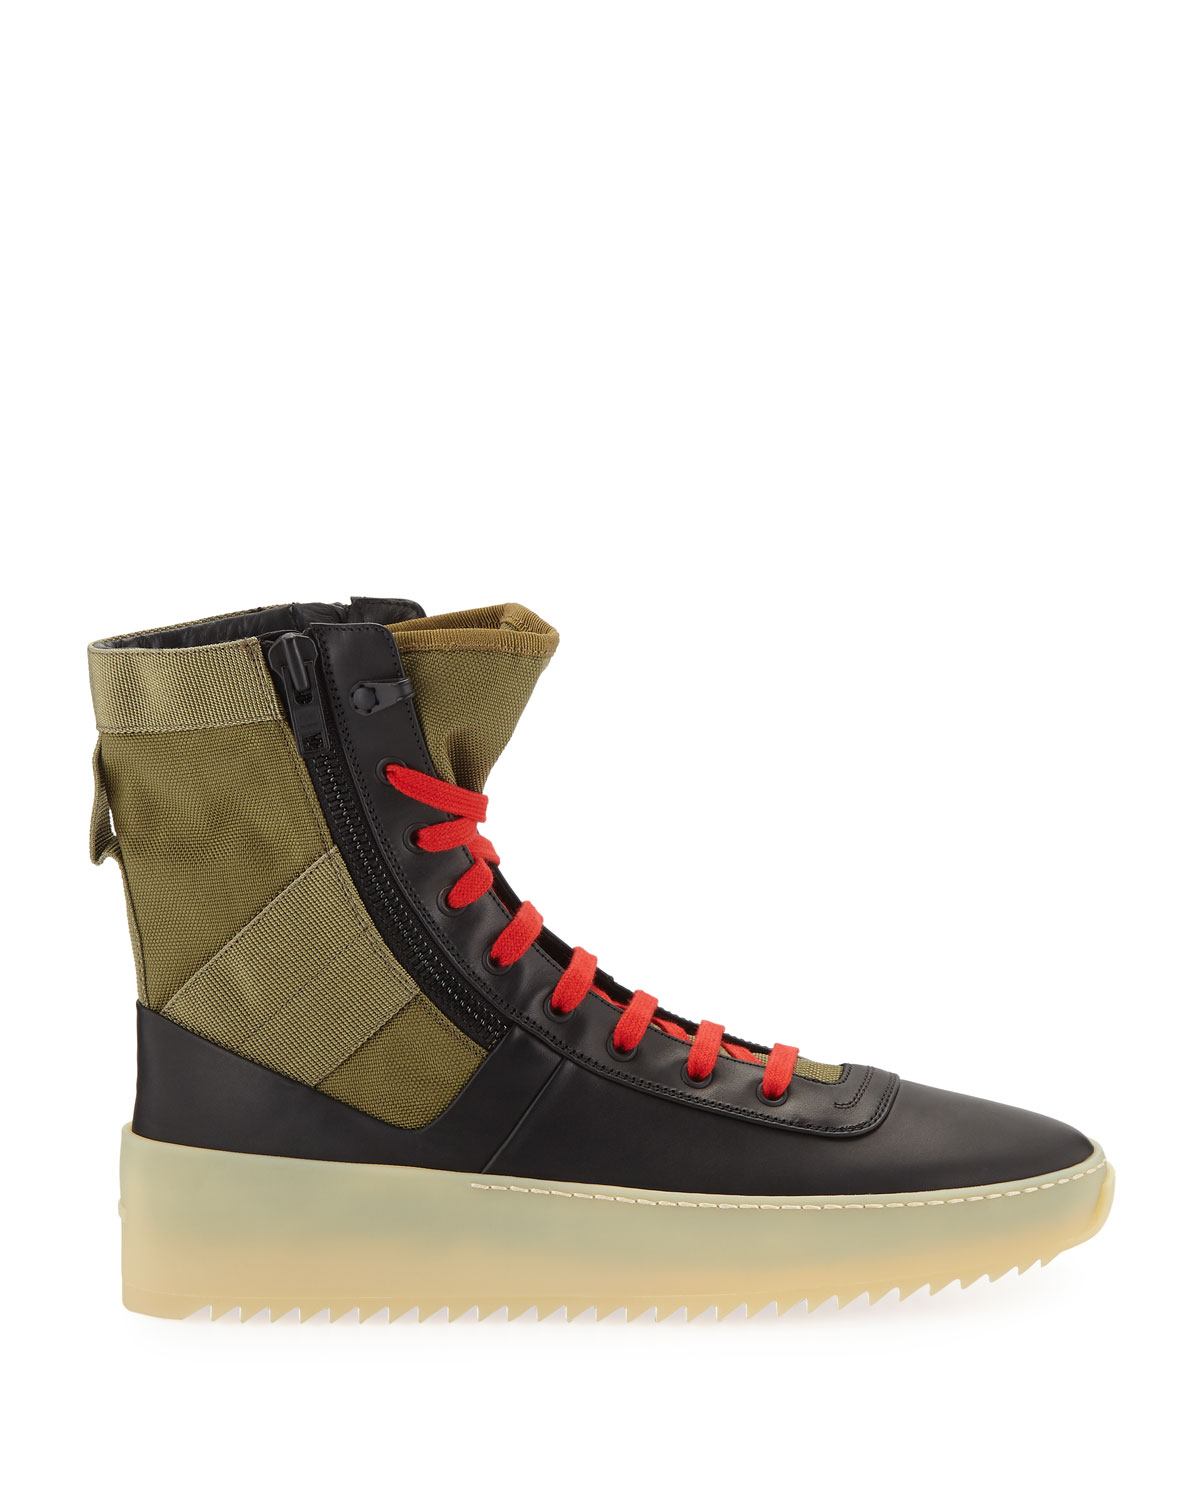 1d9aa4b3e Fear of God Men's Jungle High-Top Sneakers with Canvas Insets | Neiman  Marcus